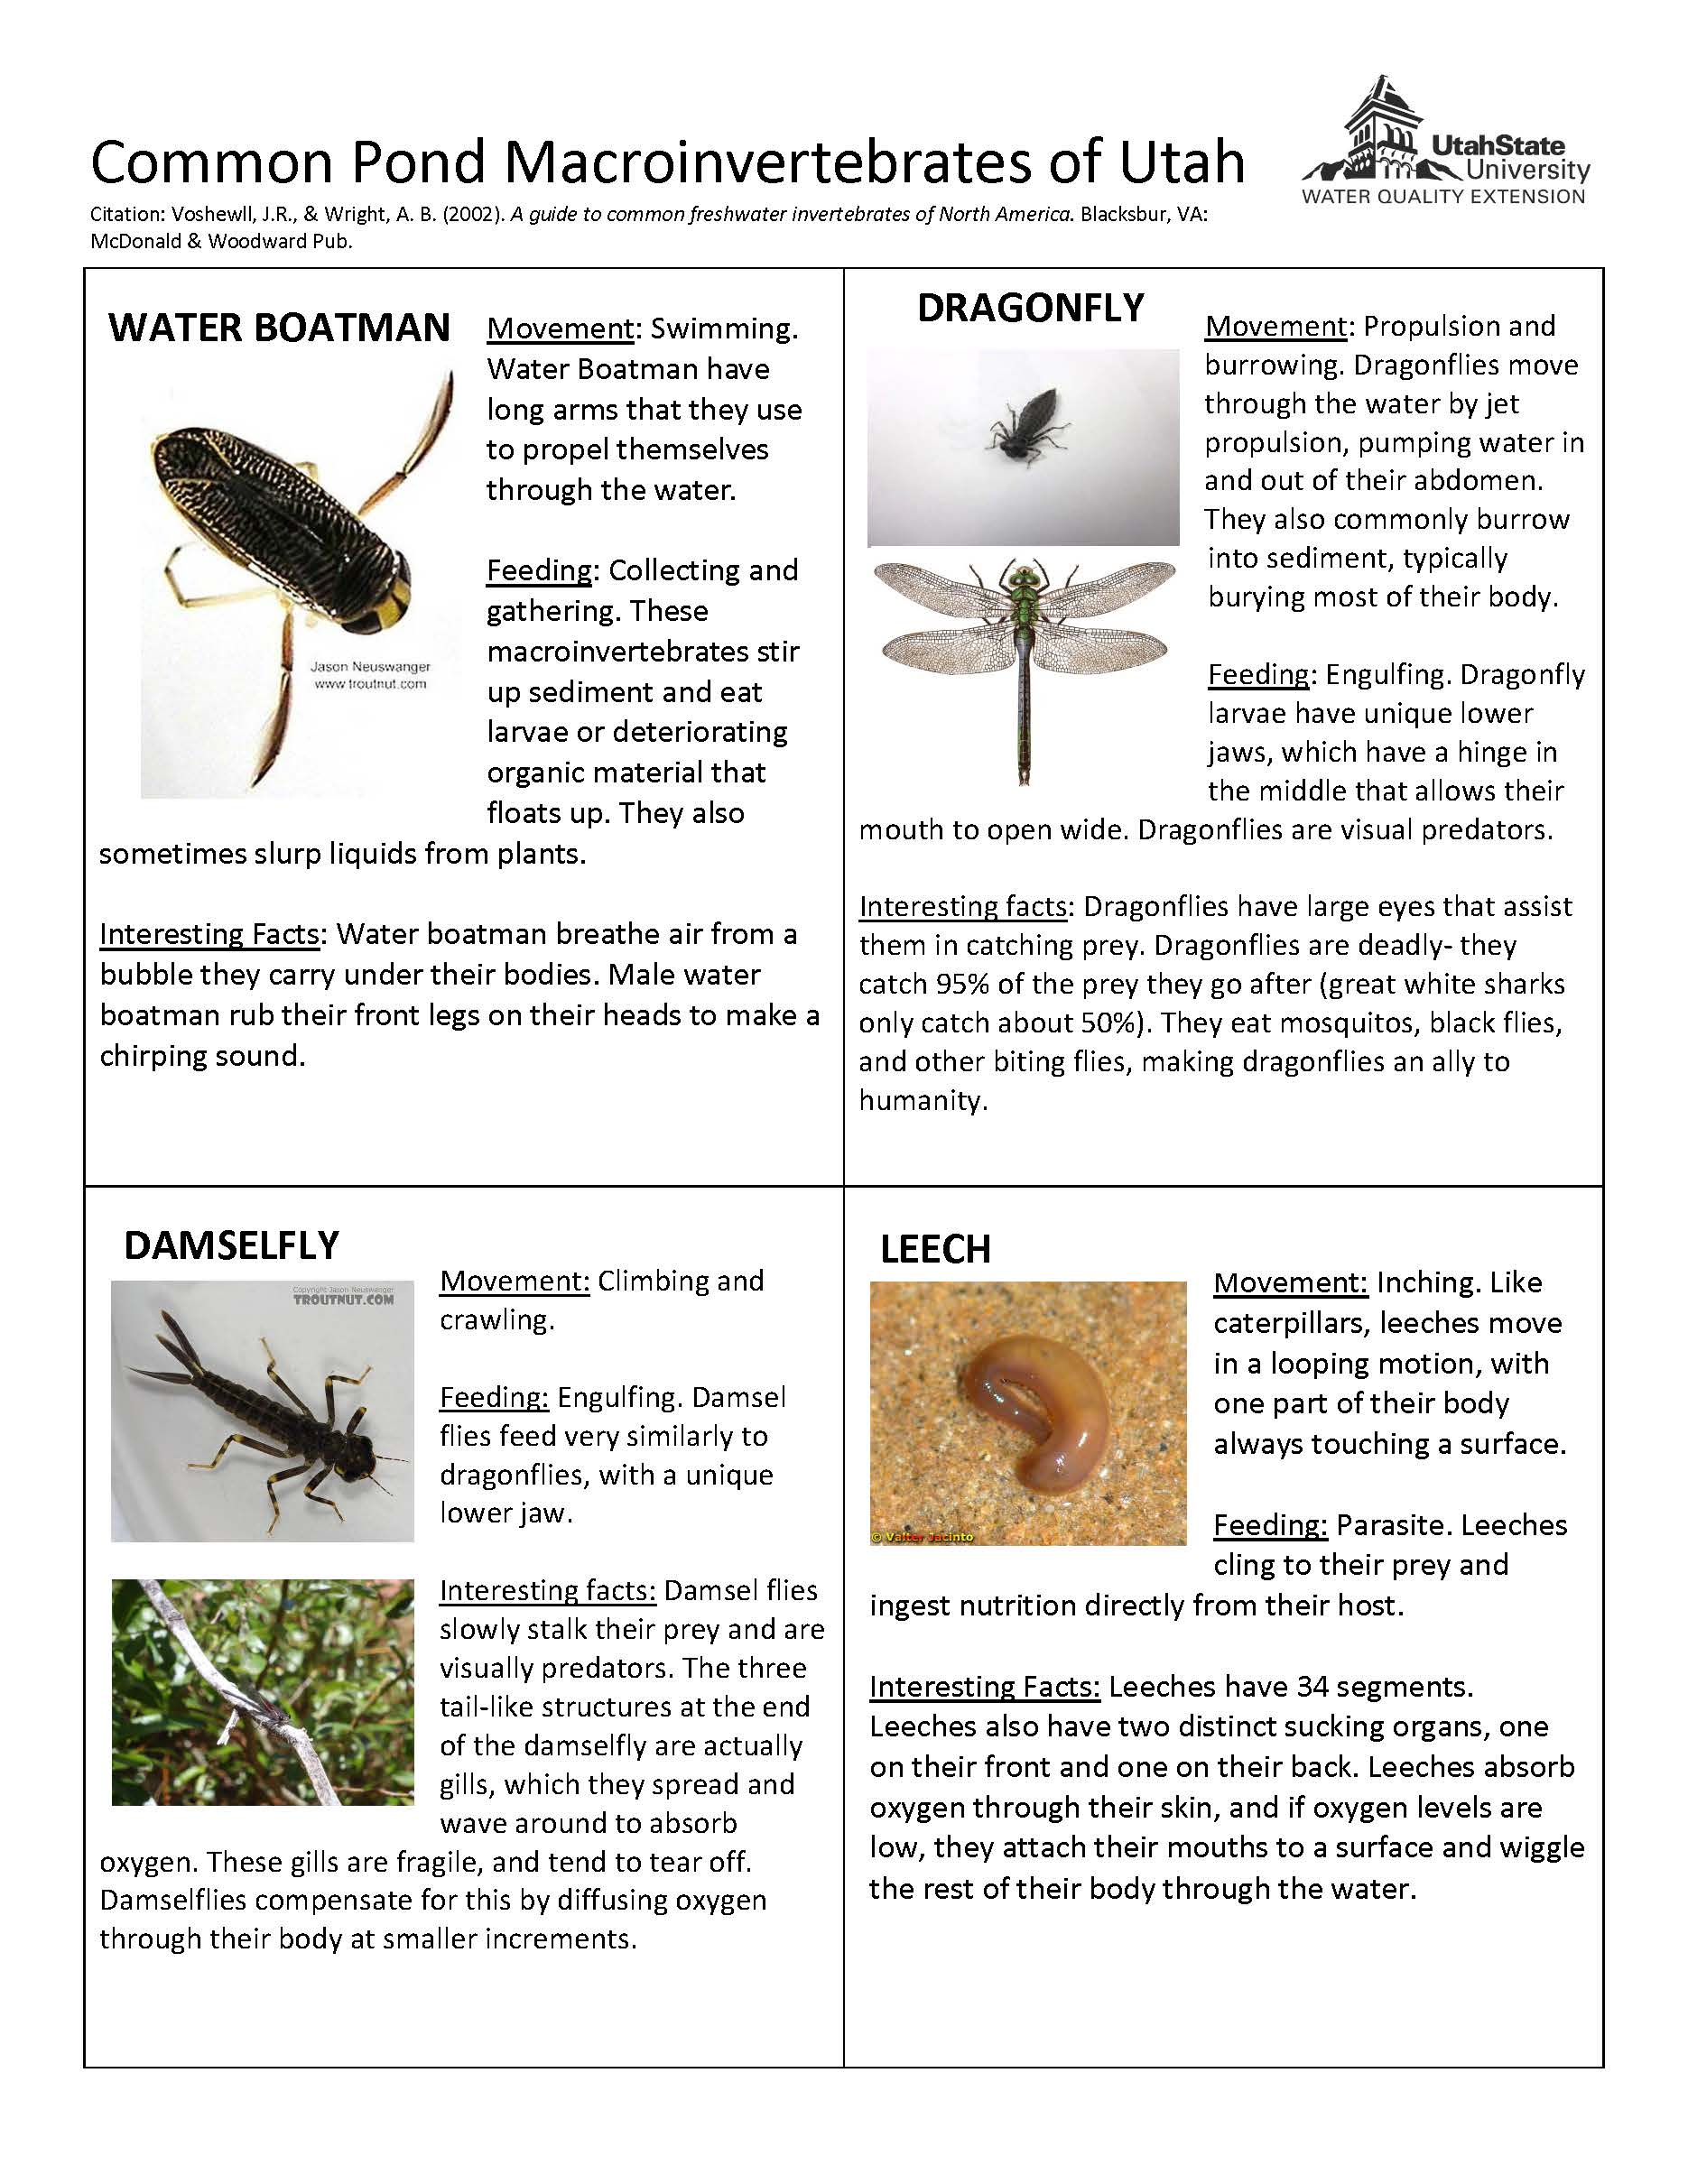 Pond macroinvertebrate guide for Utah